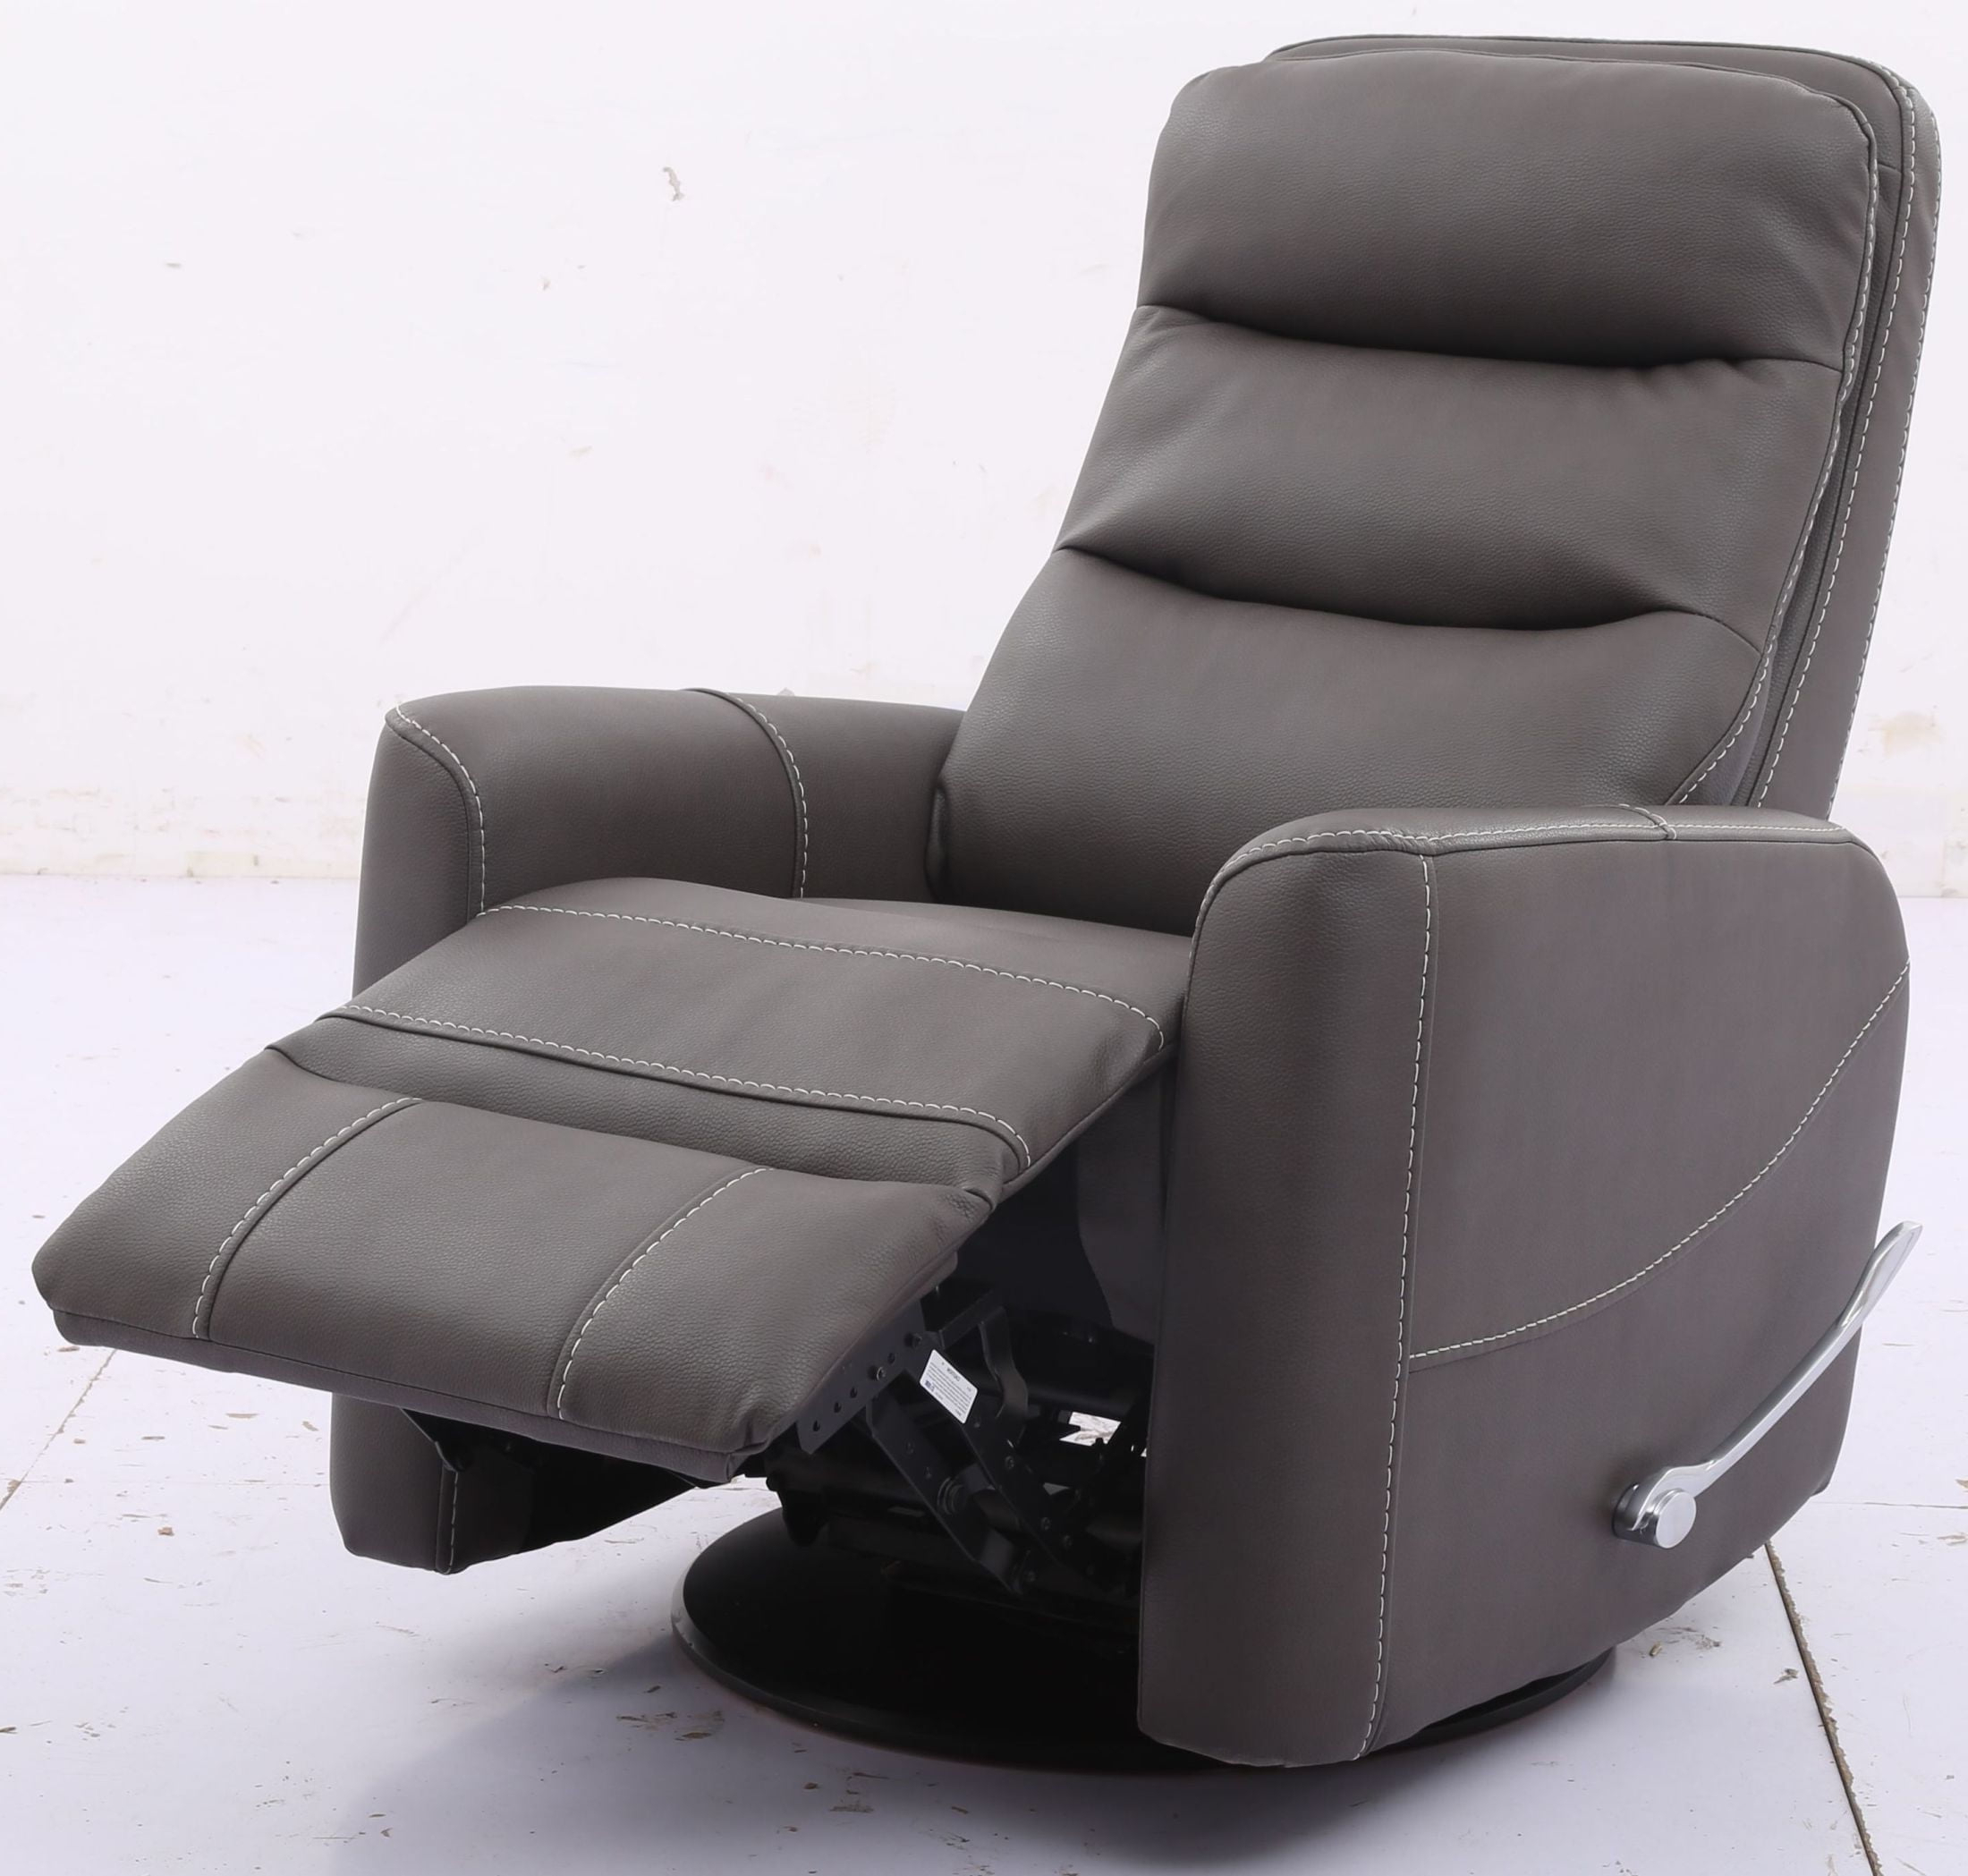 Hercules Haze Swivel Glider Recliner With Articulating Headrest From With Regard To Most Recently Released Hercules Chocolate Swivel Glider Recliners (View 20 of 20)